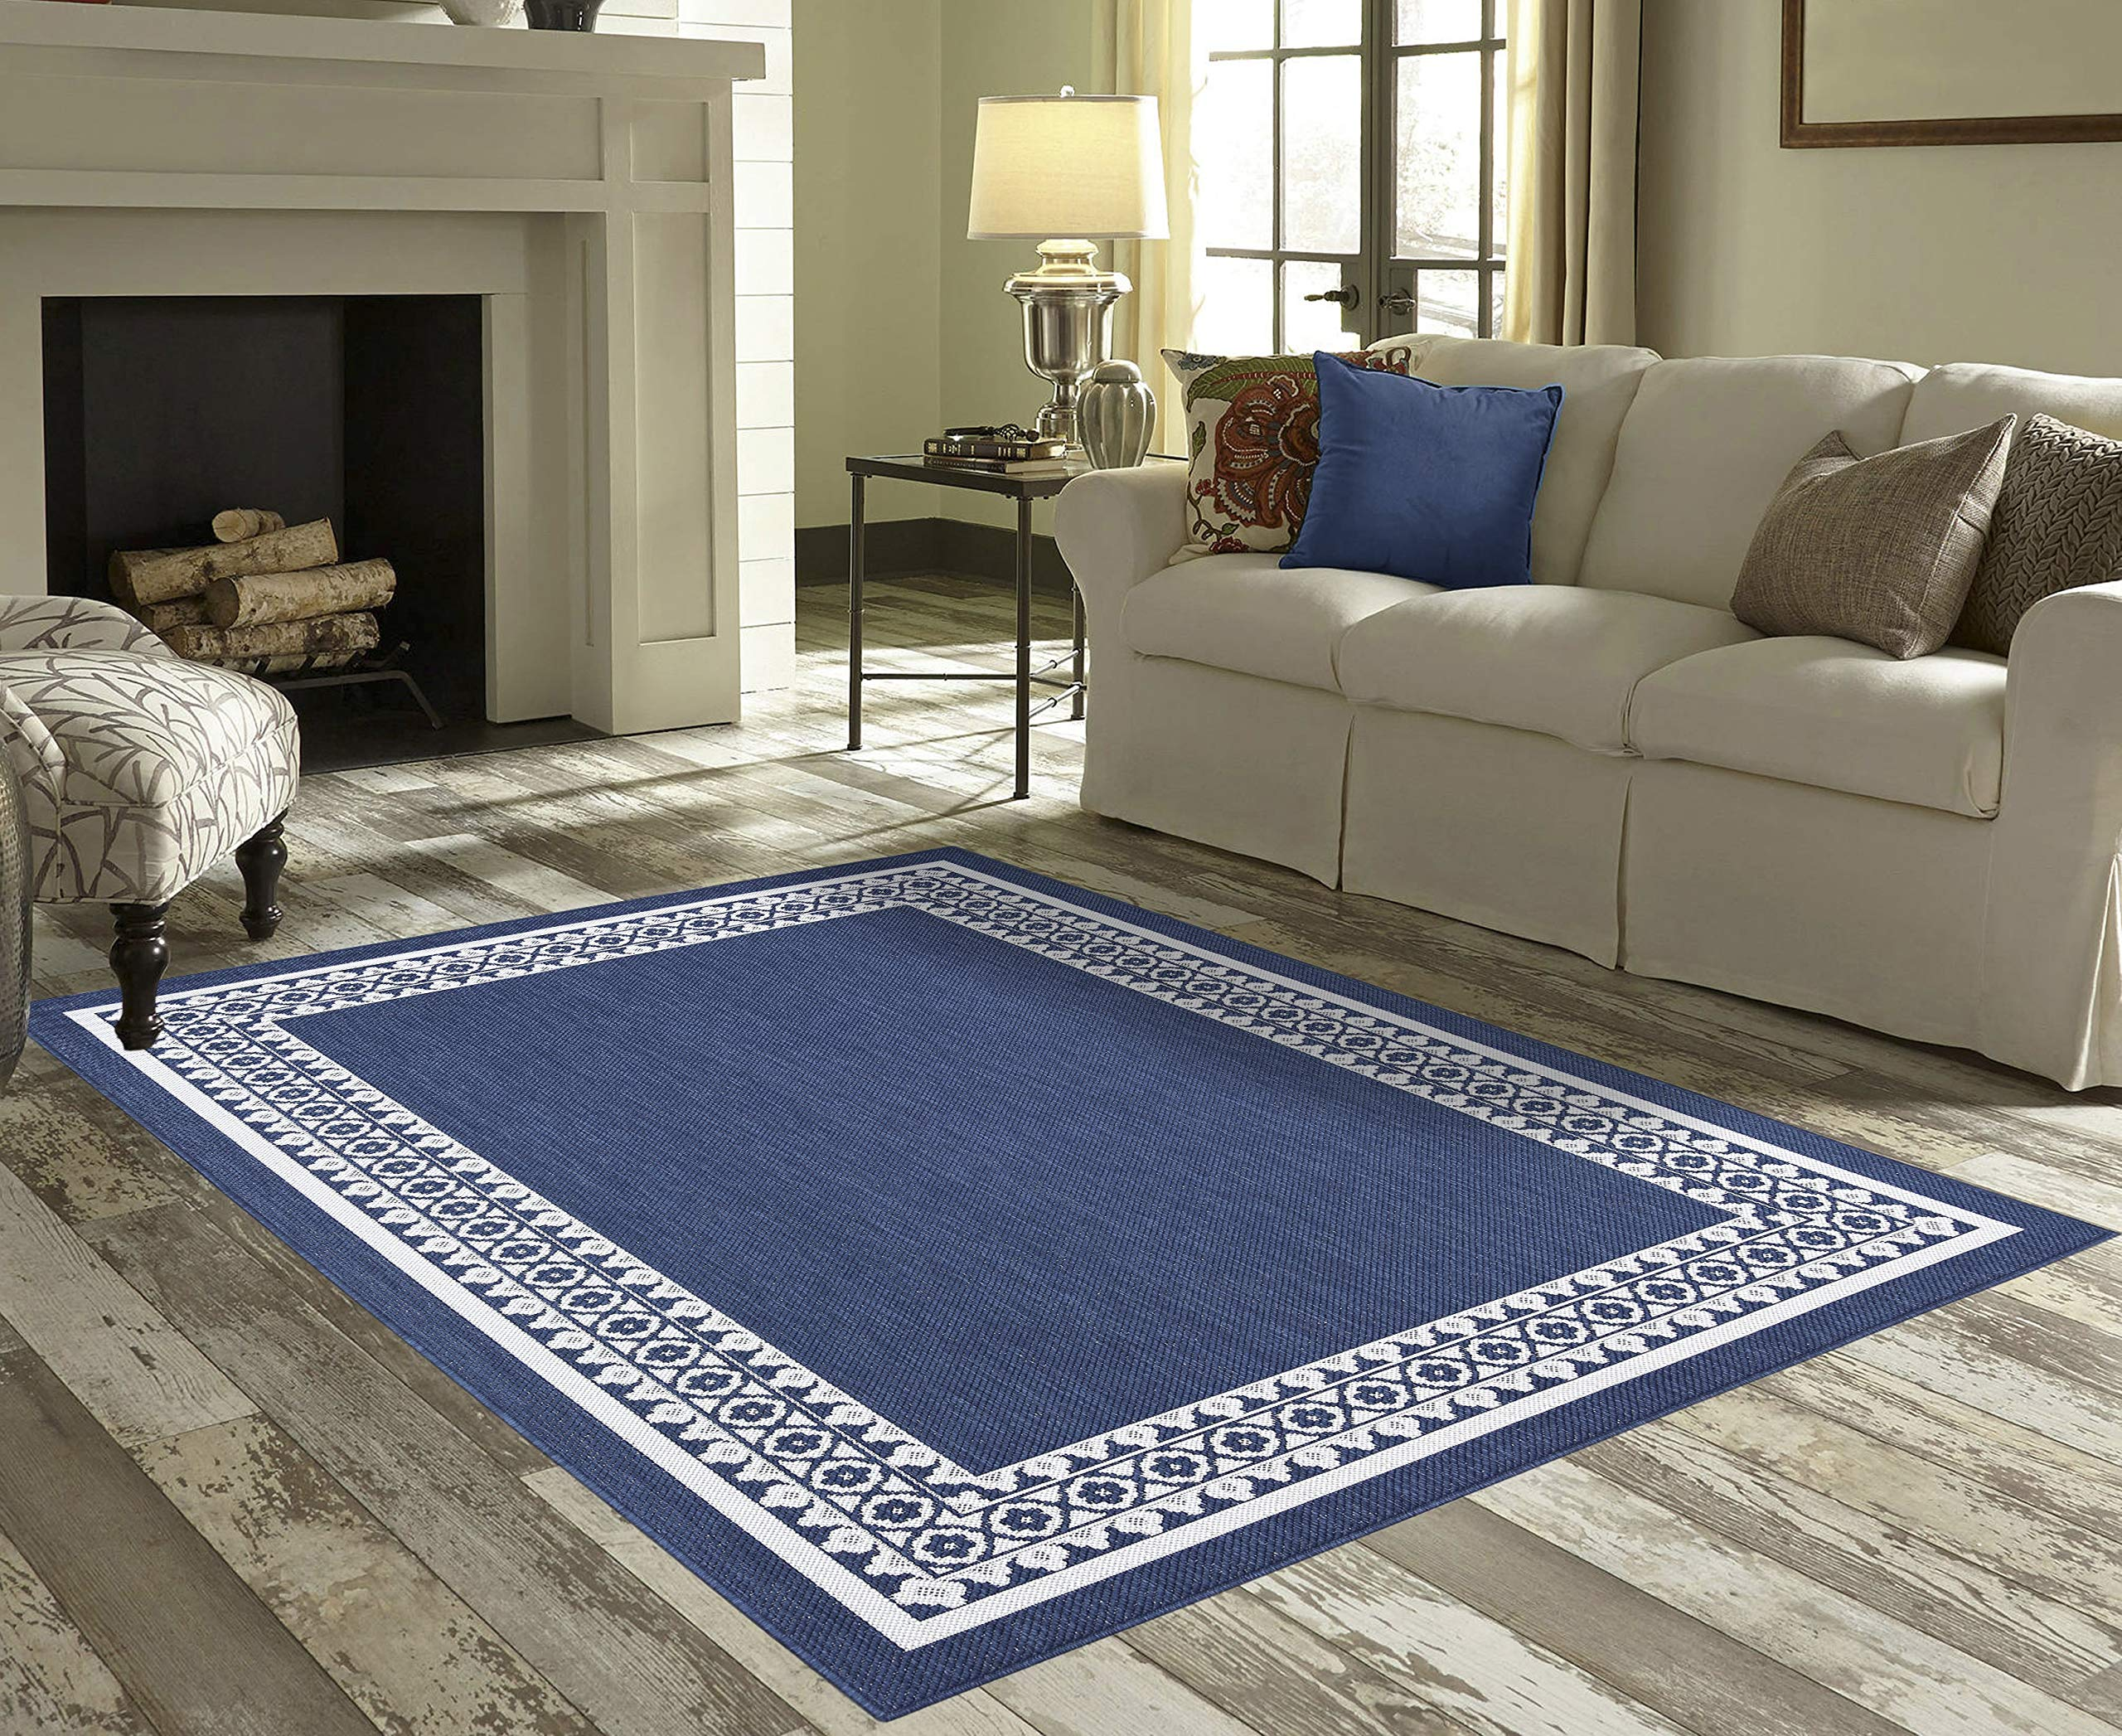 Priyate Florida Collection - All Weather Indoor/Outdoor Border Rug for Living Room, Bedroom, and Dining Room (5'3'' x 7'6'', Navy Blue)